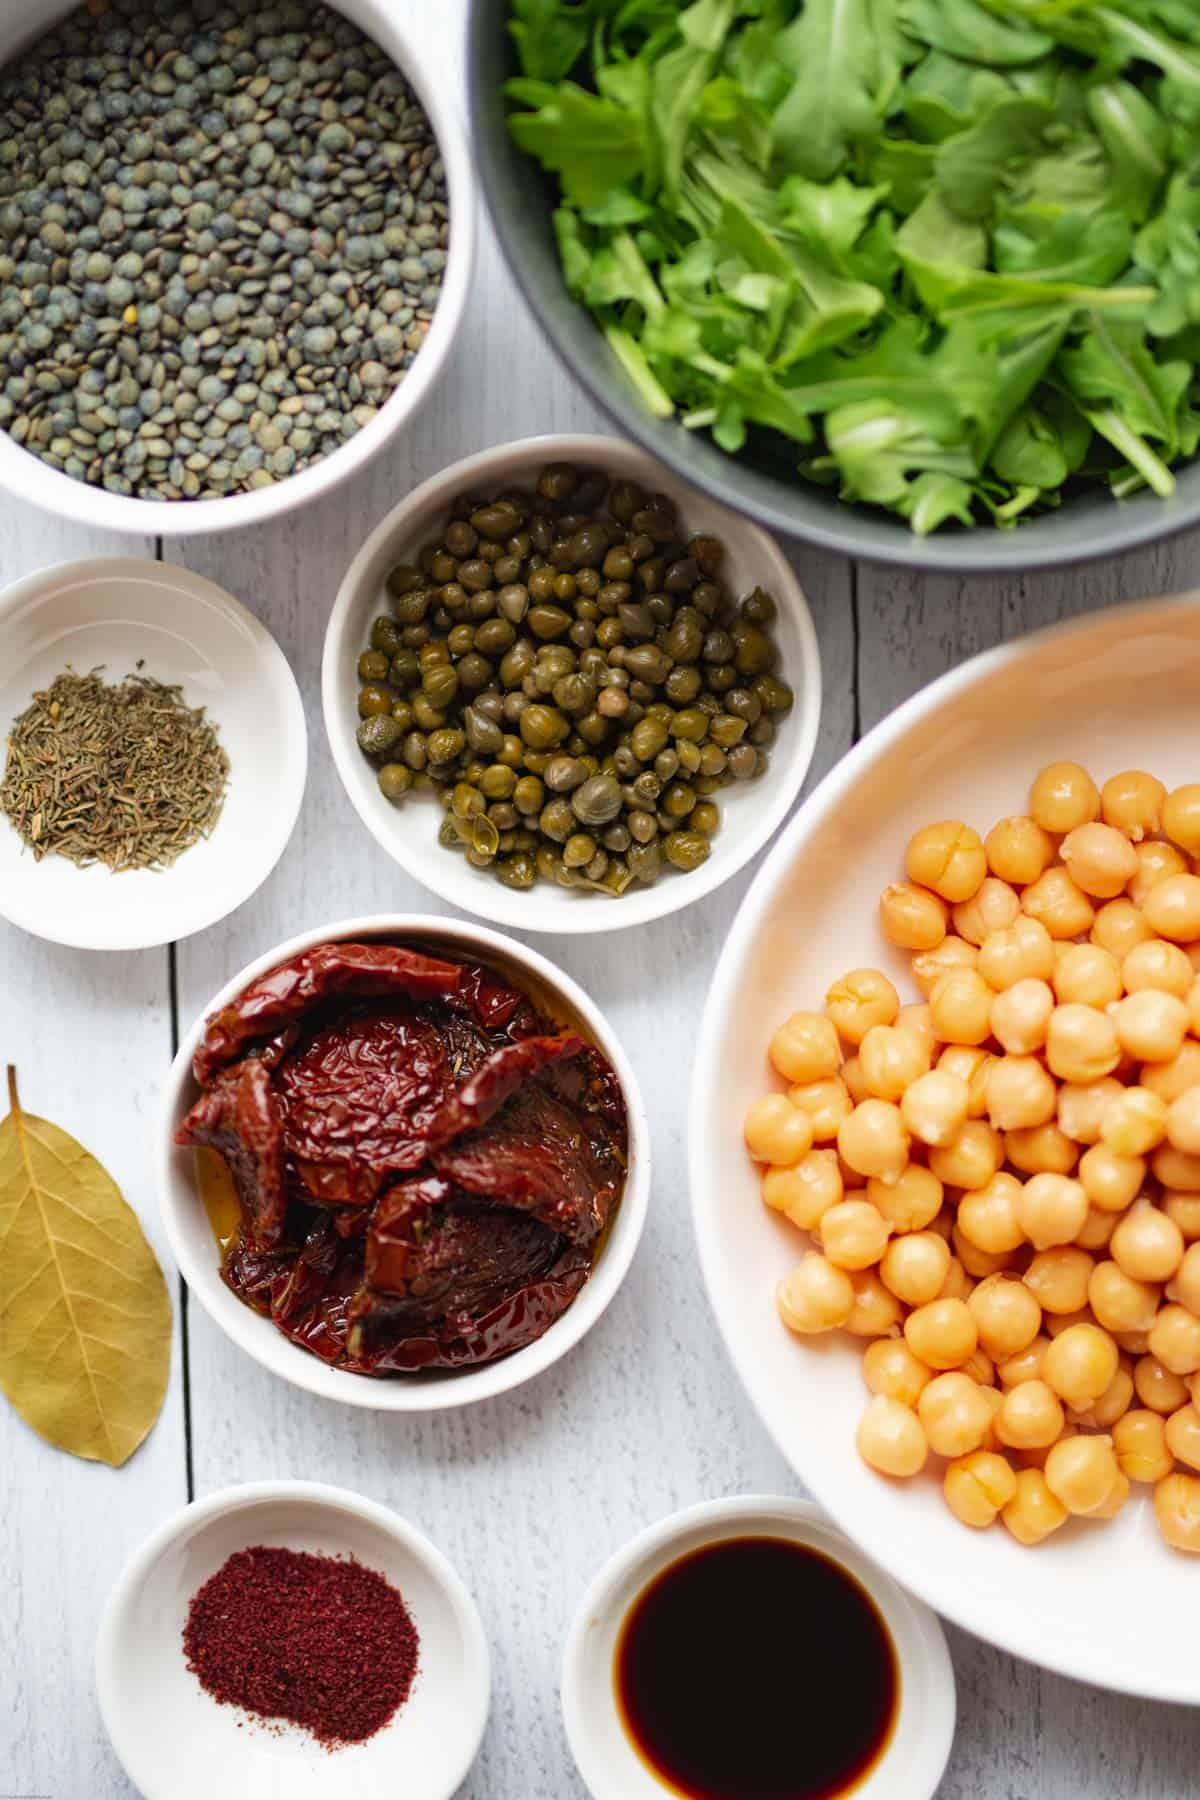 Ingredients for Chickpea Lentil & Sun-Dried Tomato Sumac Salad: chickpeas, lentils, arugula, tamari, capers, sun-dried tomatoes, dried thyme, bay leaf, and sumac.